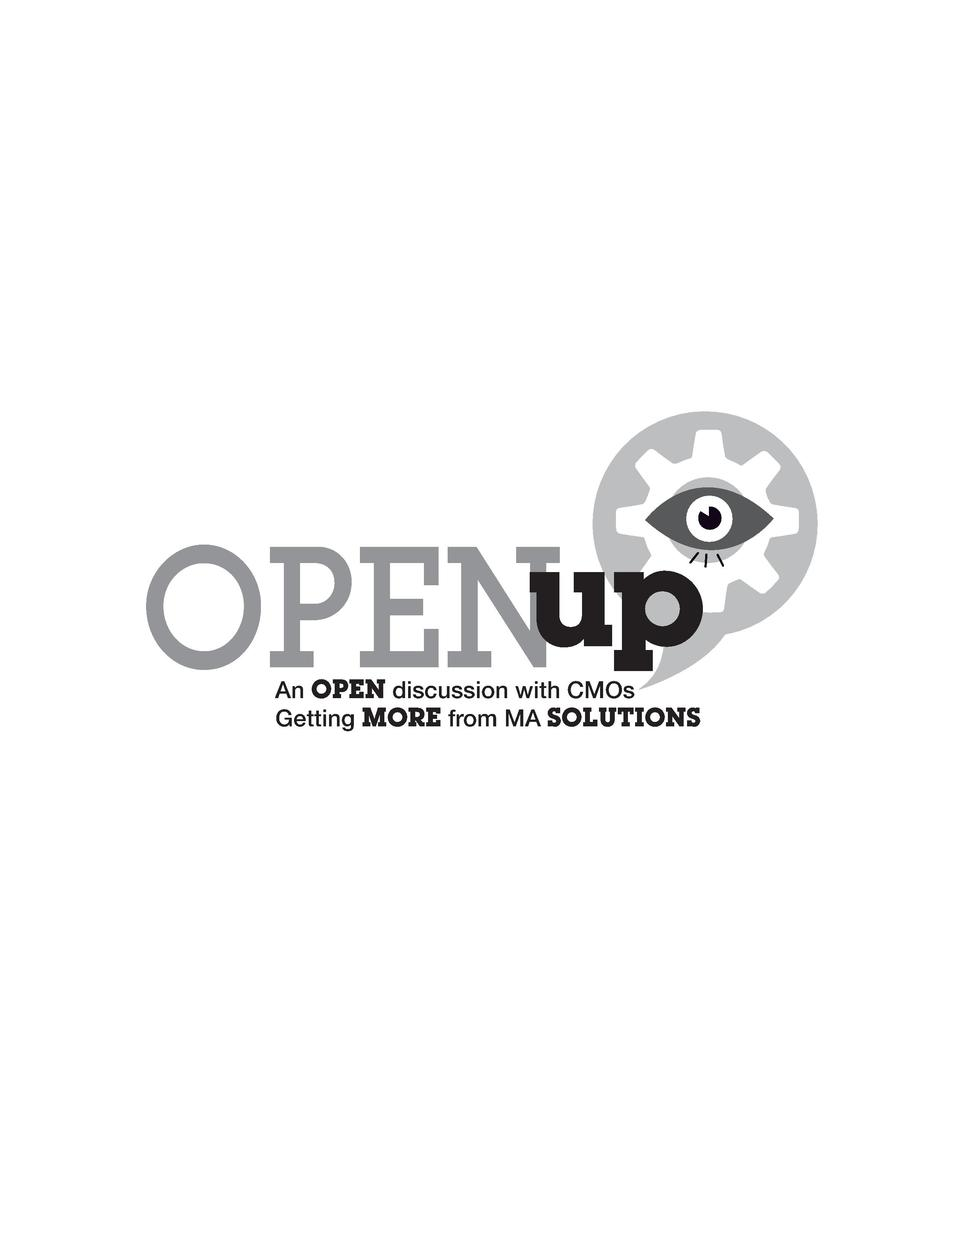 OPENup An OPEN discussion with CMOs Getting MORE from MA SOLUTIONS